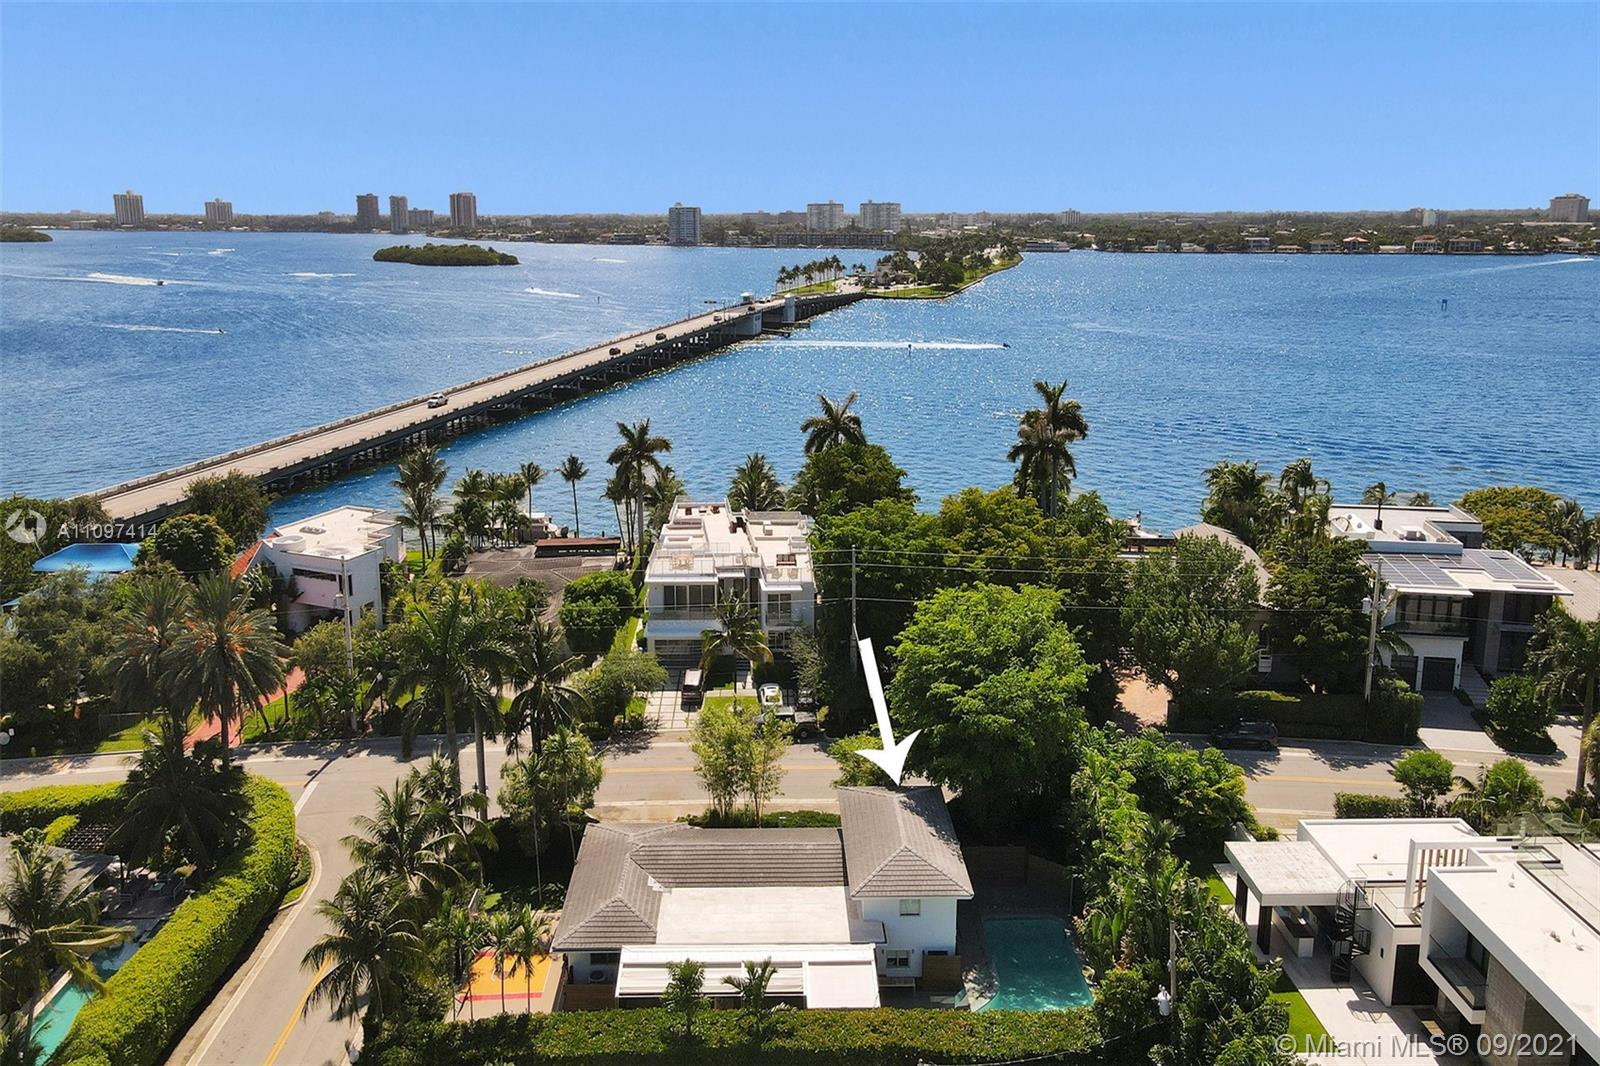 Single Family Home,For Sale,9701 W Broadview Dr, Bay Harbor Islands, Florida 33154,Brickell,realty,broker,condos near me